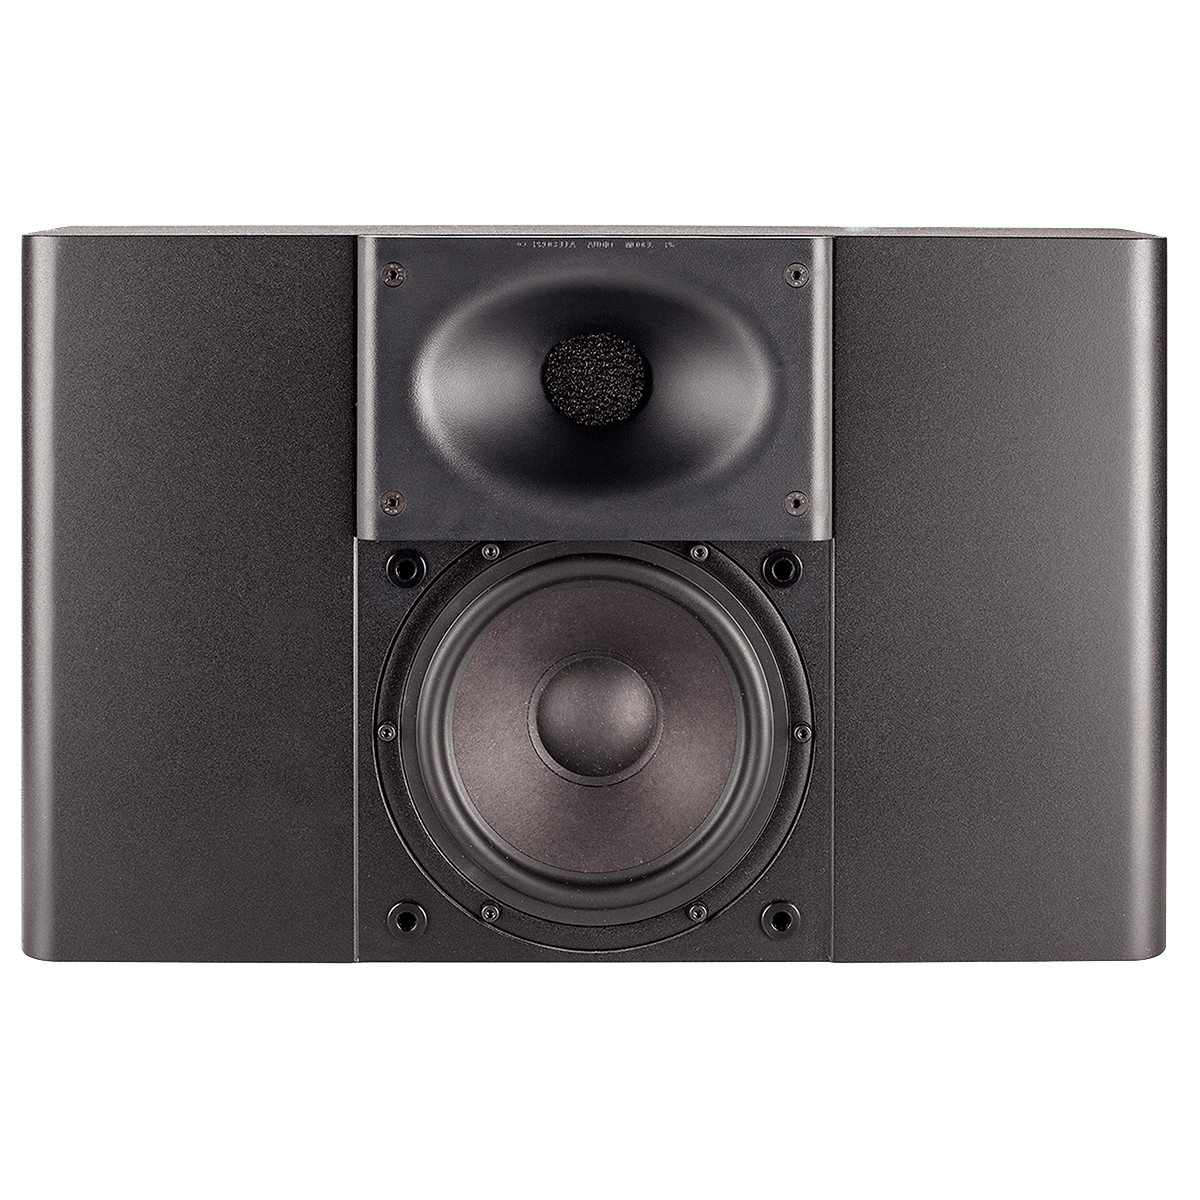 Procella P6 front without cover 1200×1200